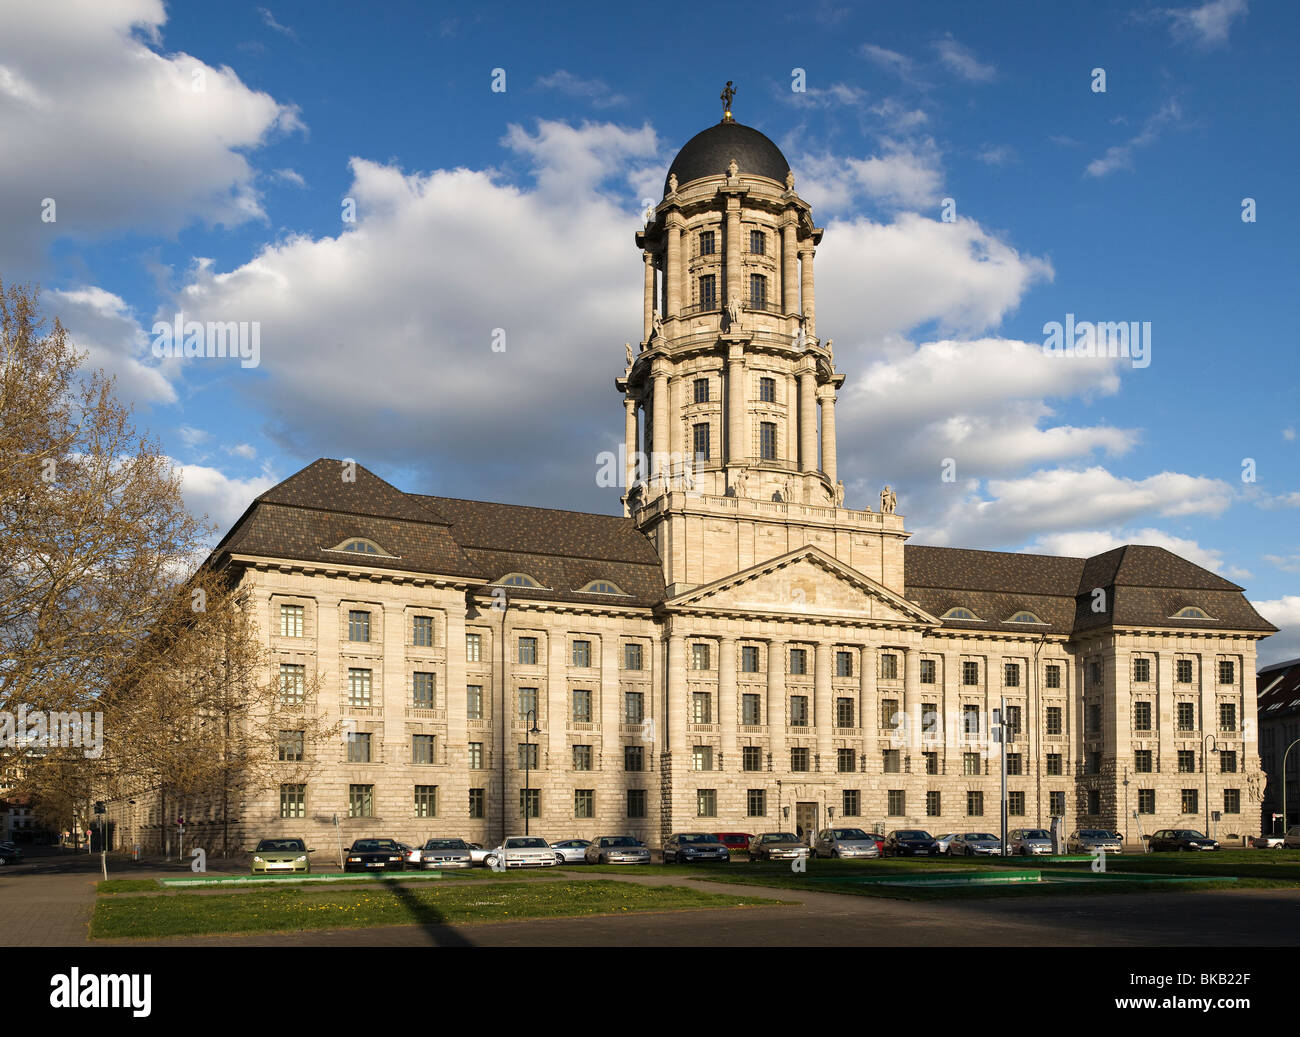 Altes Stadthaus, Molkenmarkt, Berlin, Germany - Stock Image